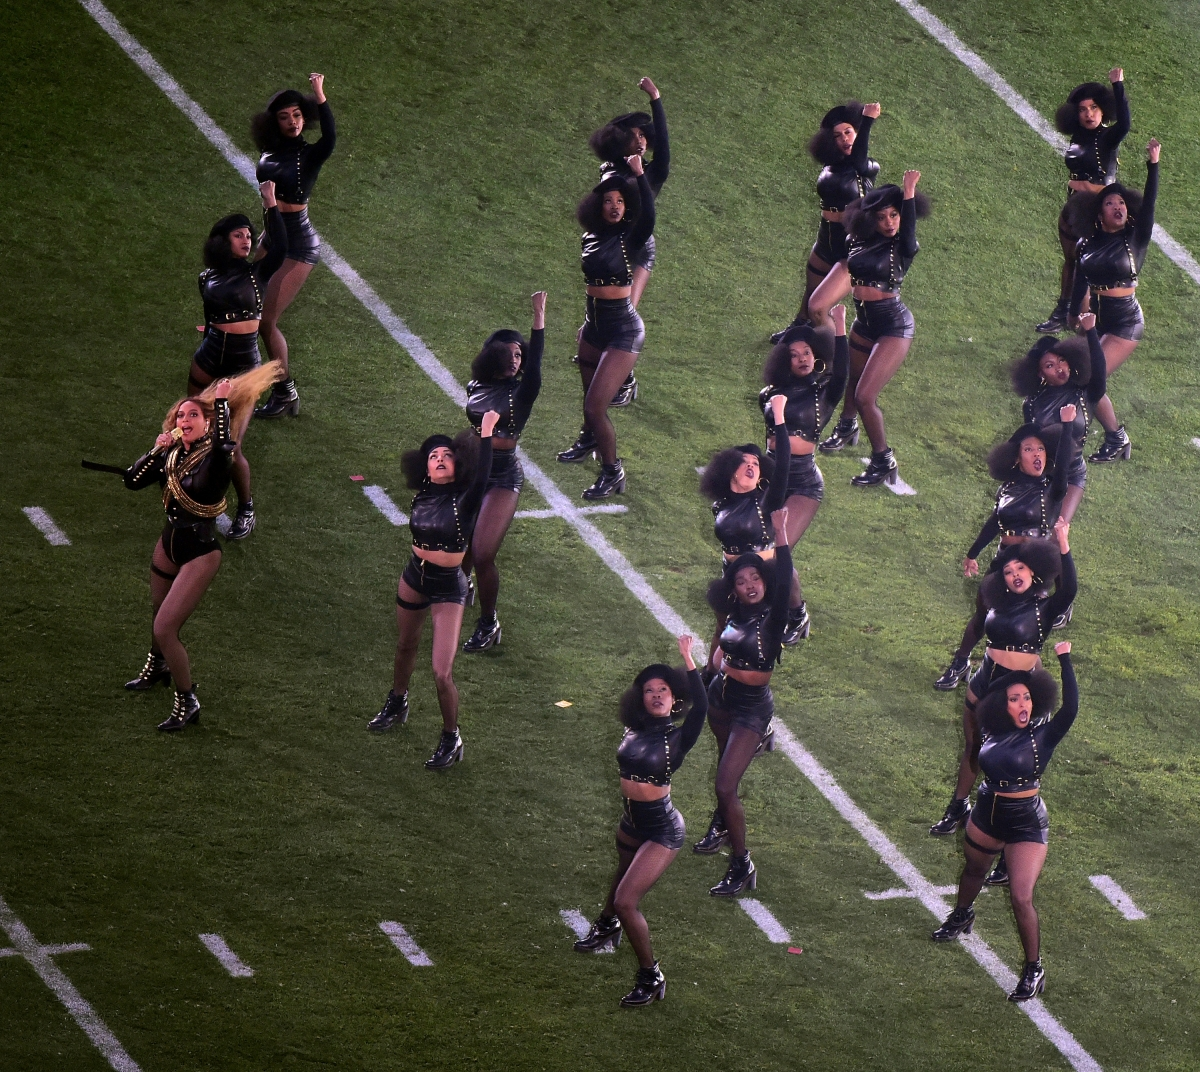 Beyonce performing at the Super Bowl